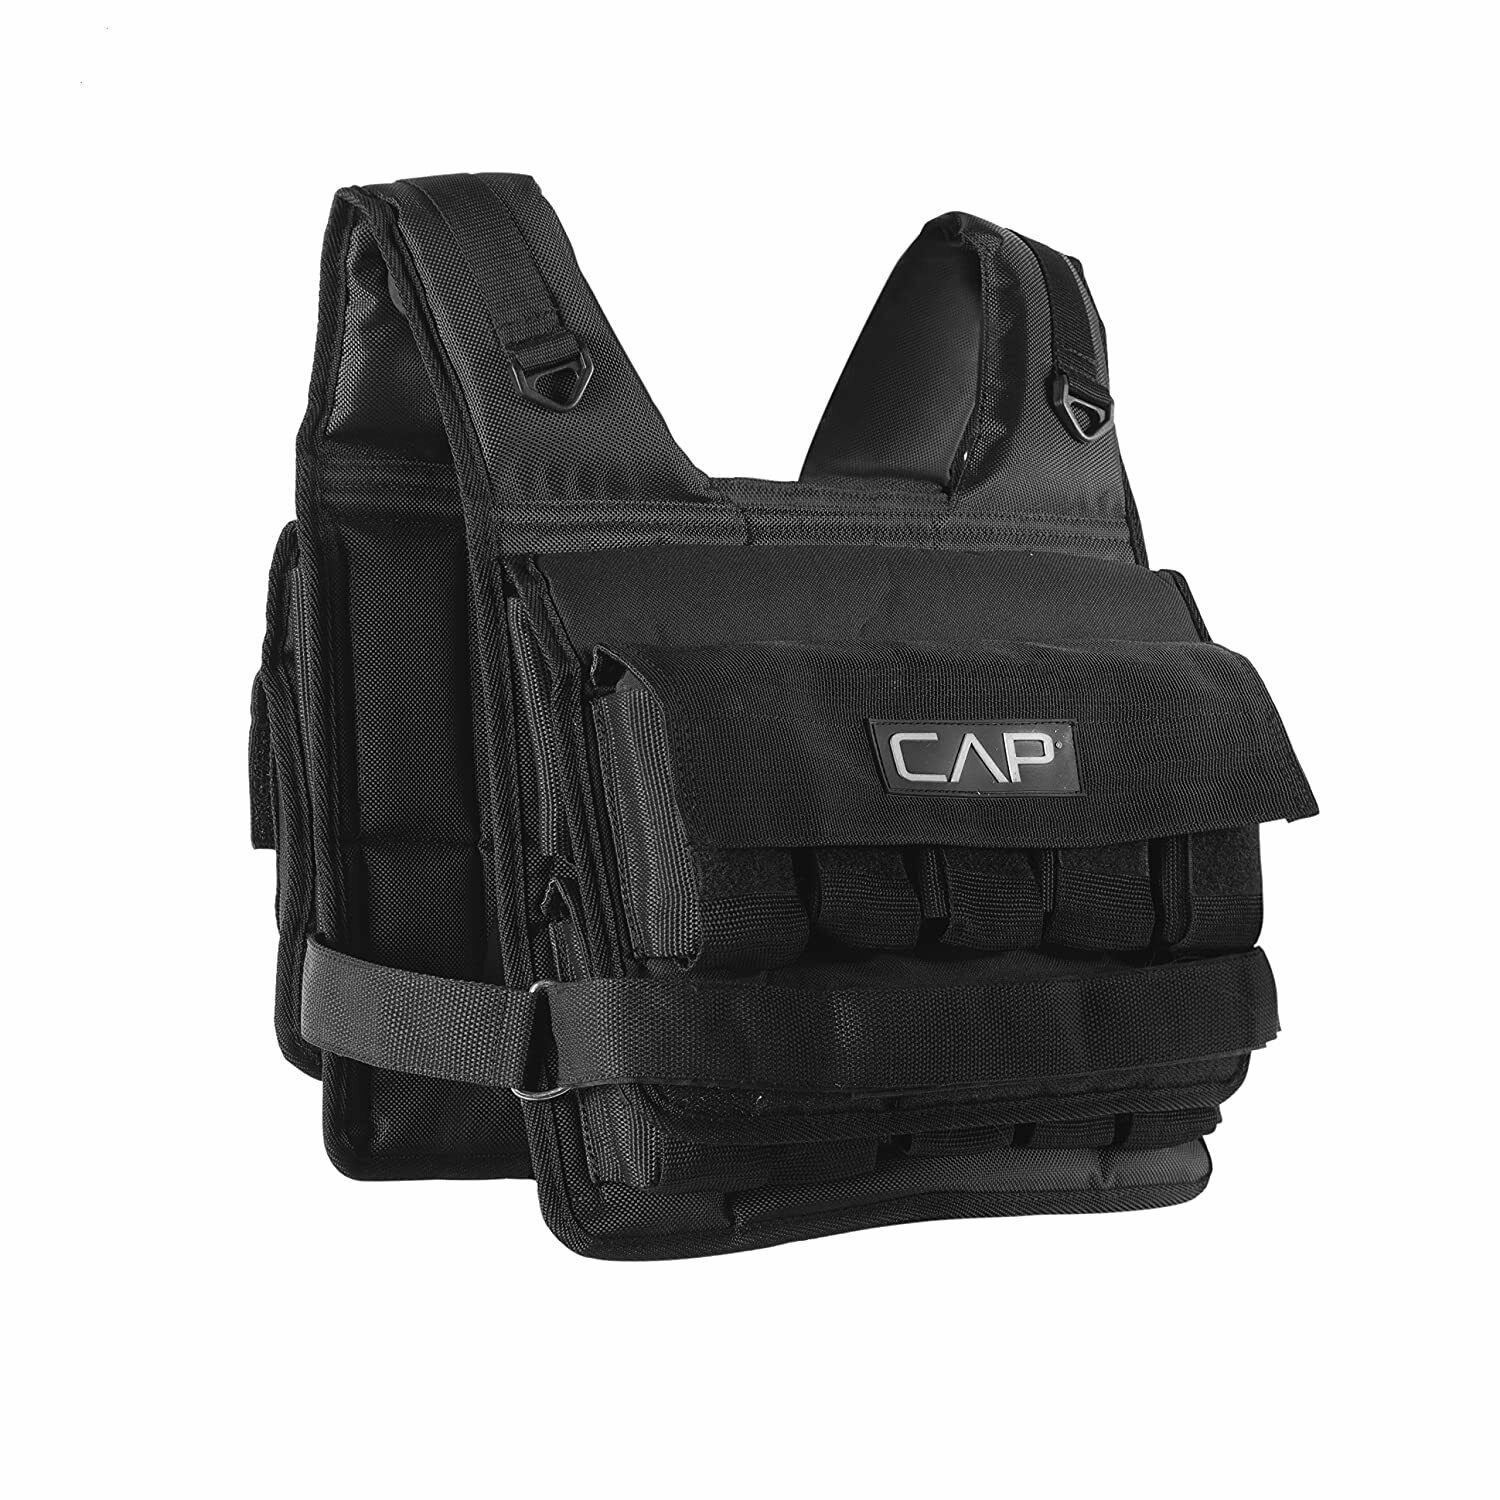 CAP Barbell Short Adjustable Weighted Vest, 20 lb Weights In